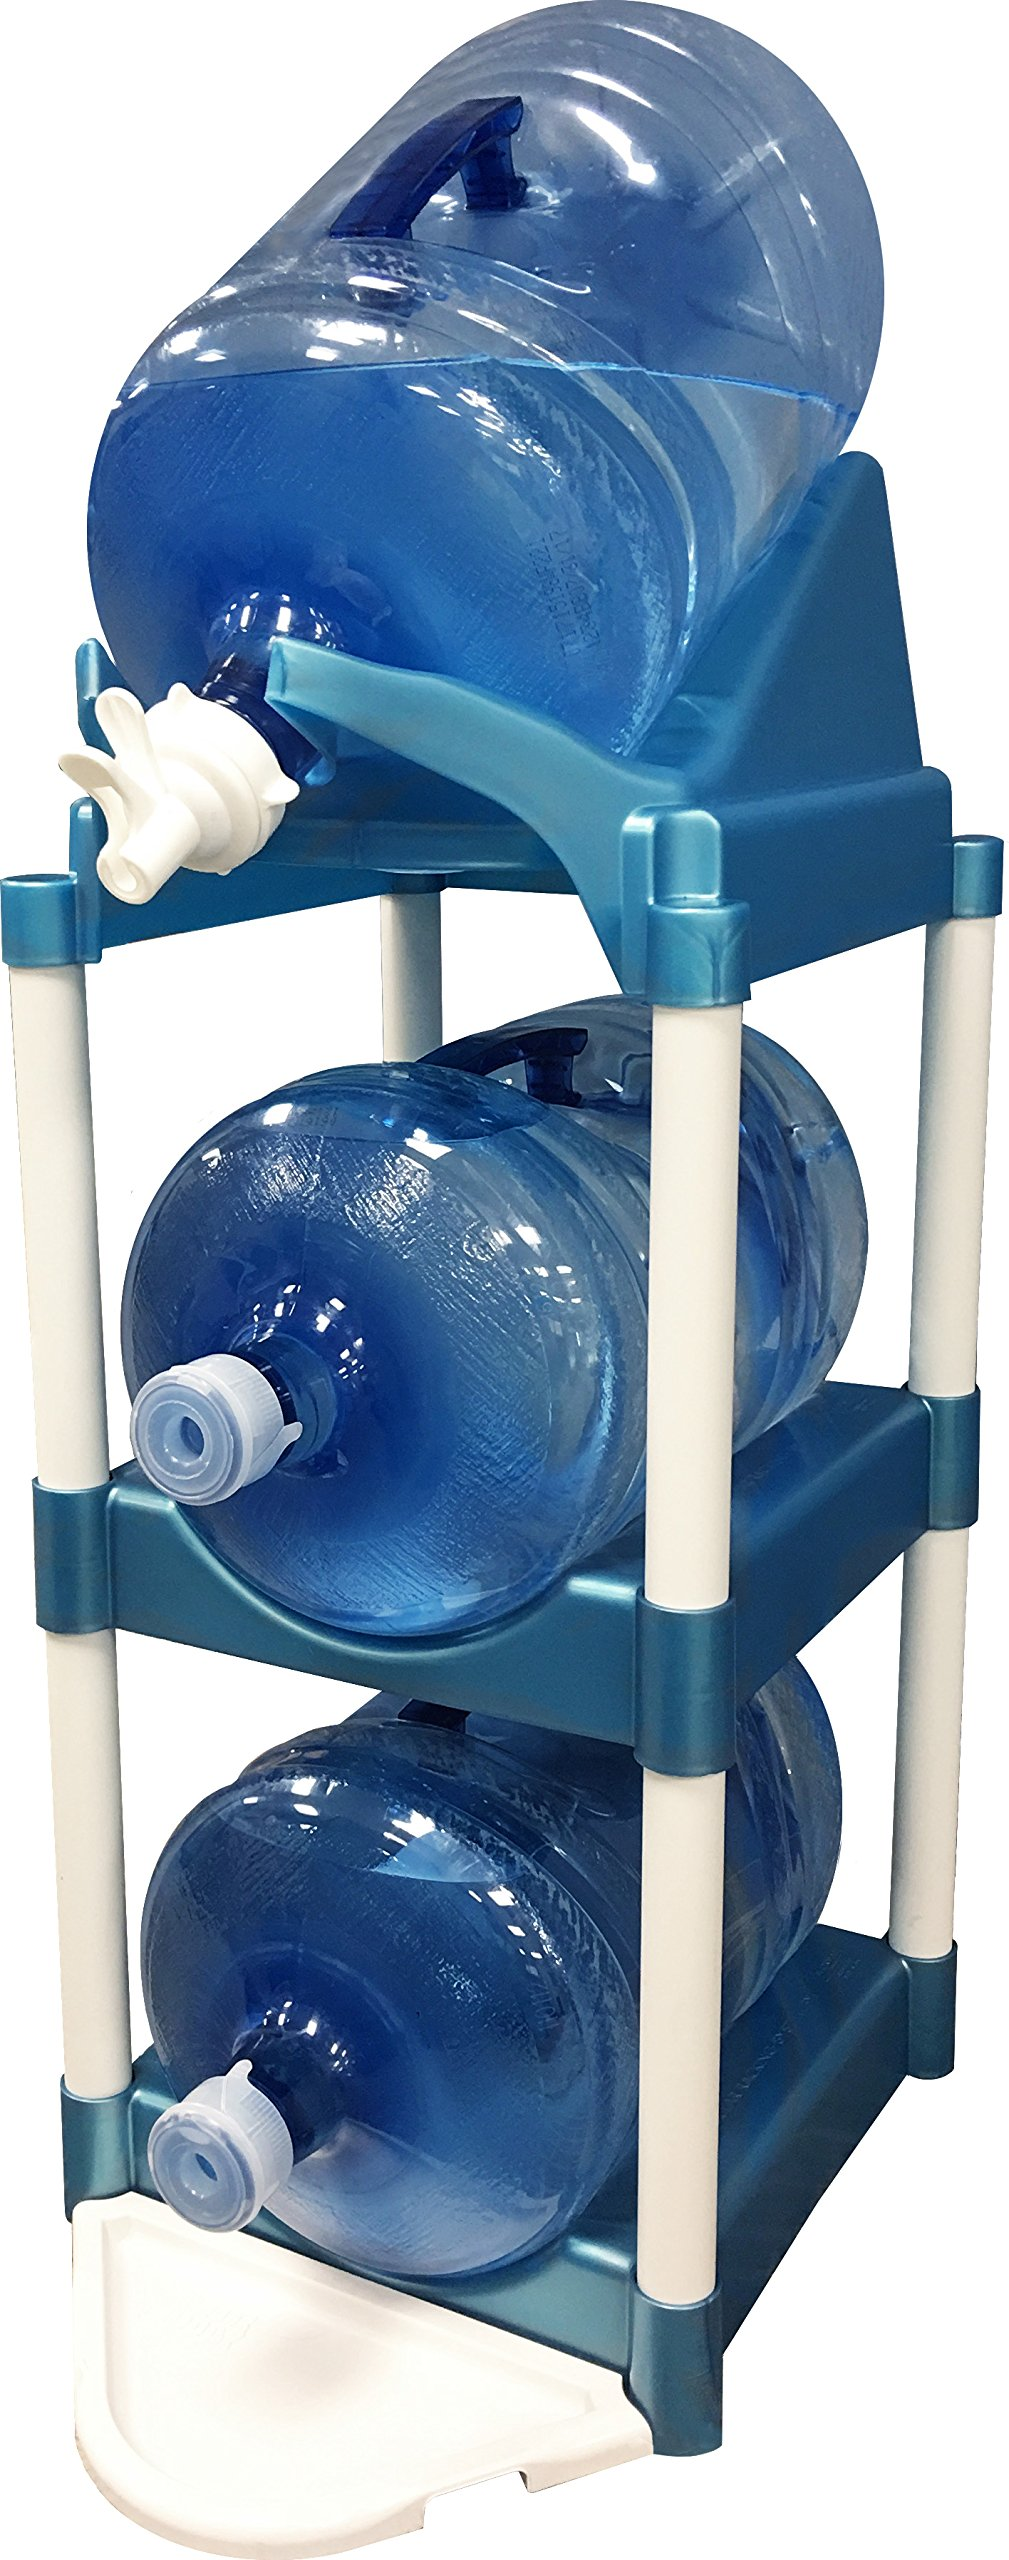 Bottle Buddy TBB85007 Pour & Store, Blue Cascada Pour and Store System, One,